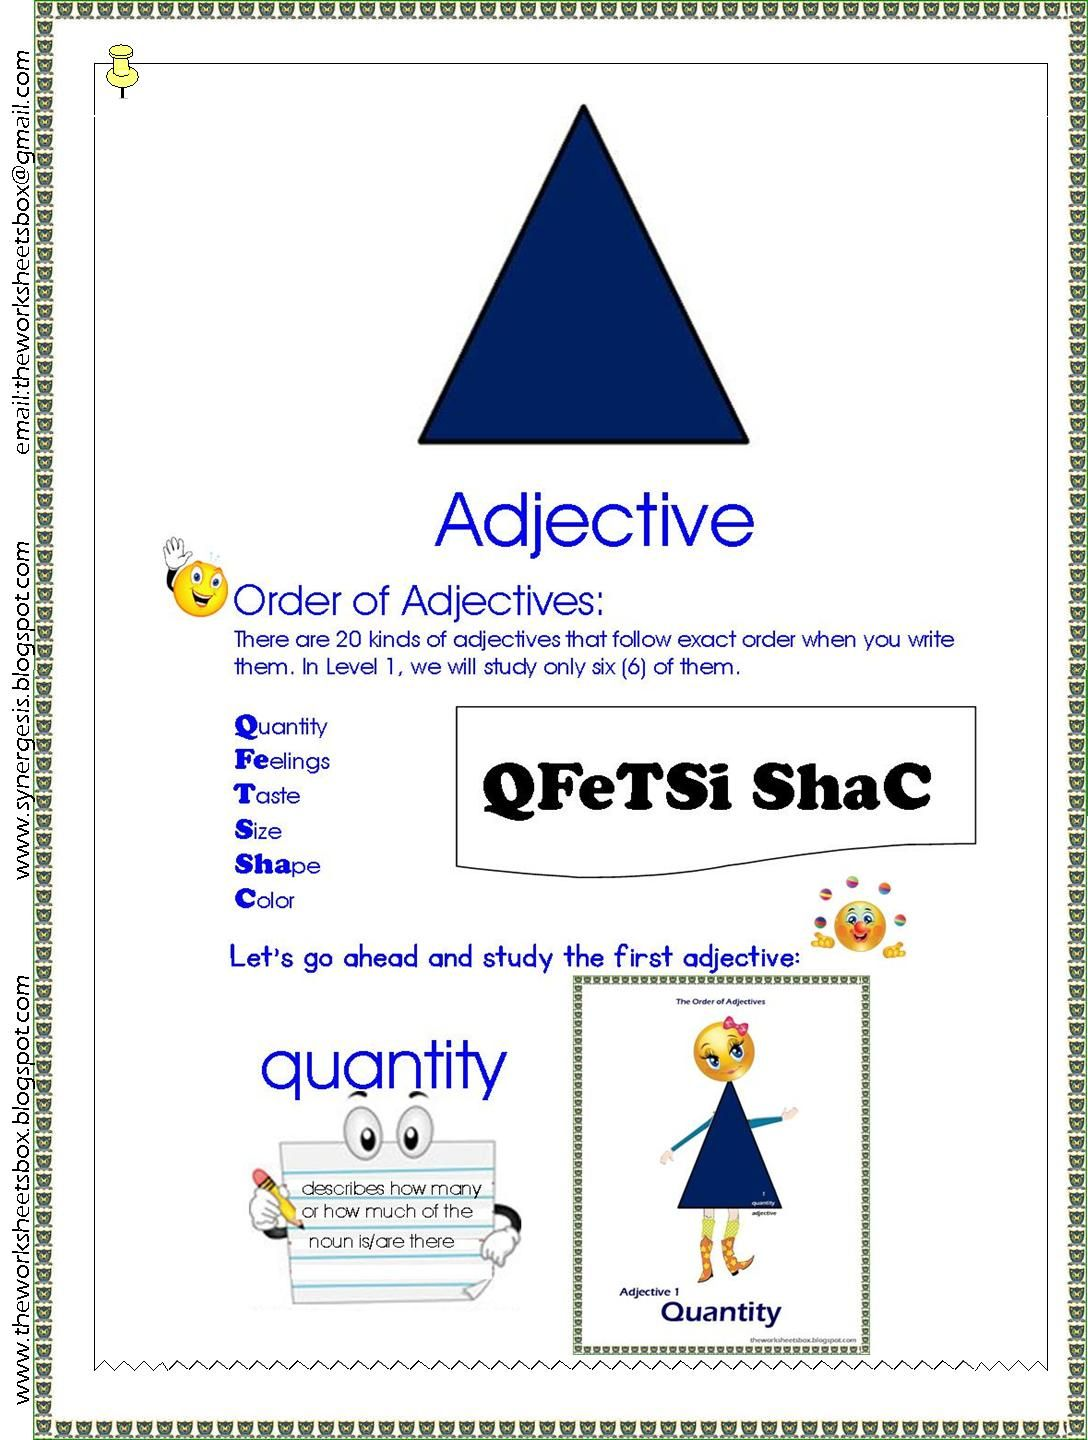 Sample Worksheet For The Adjective Study